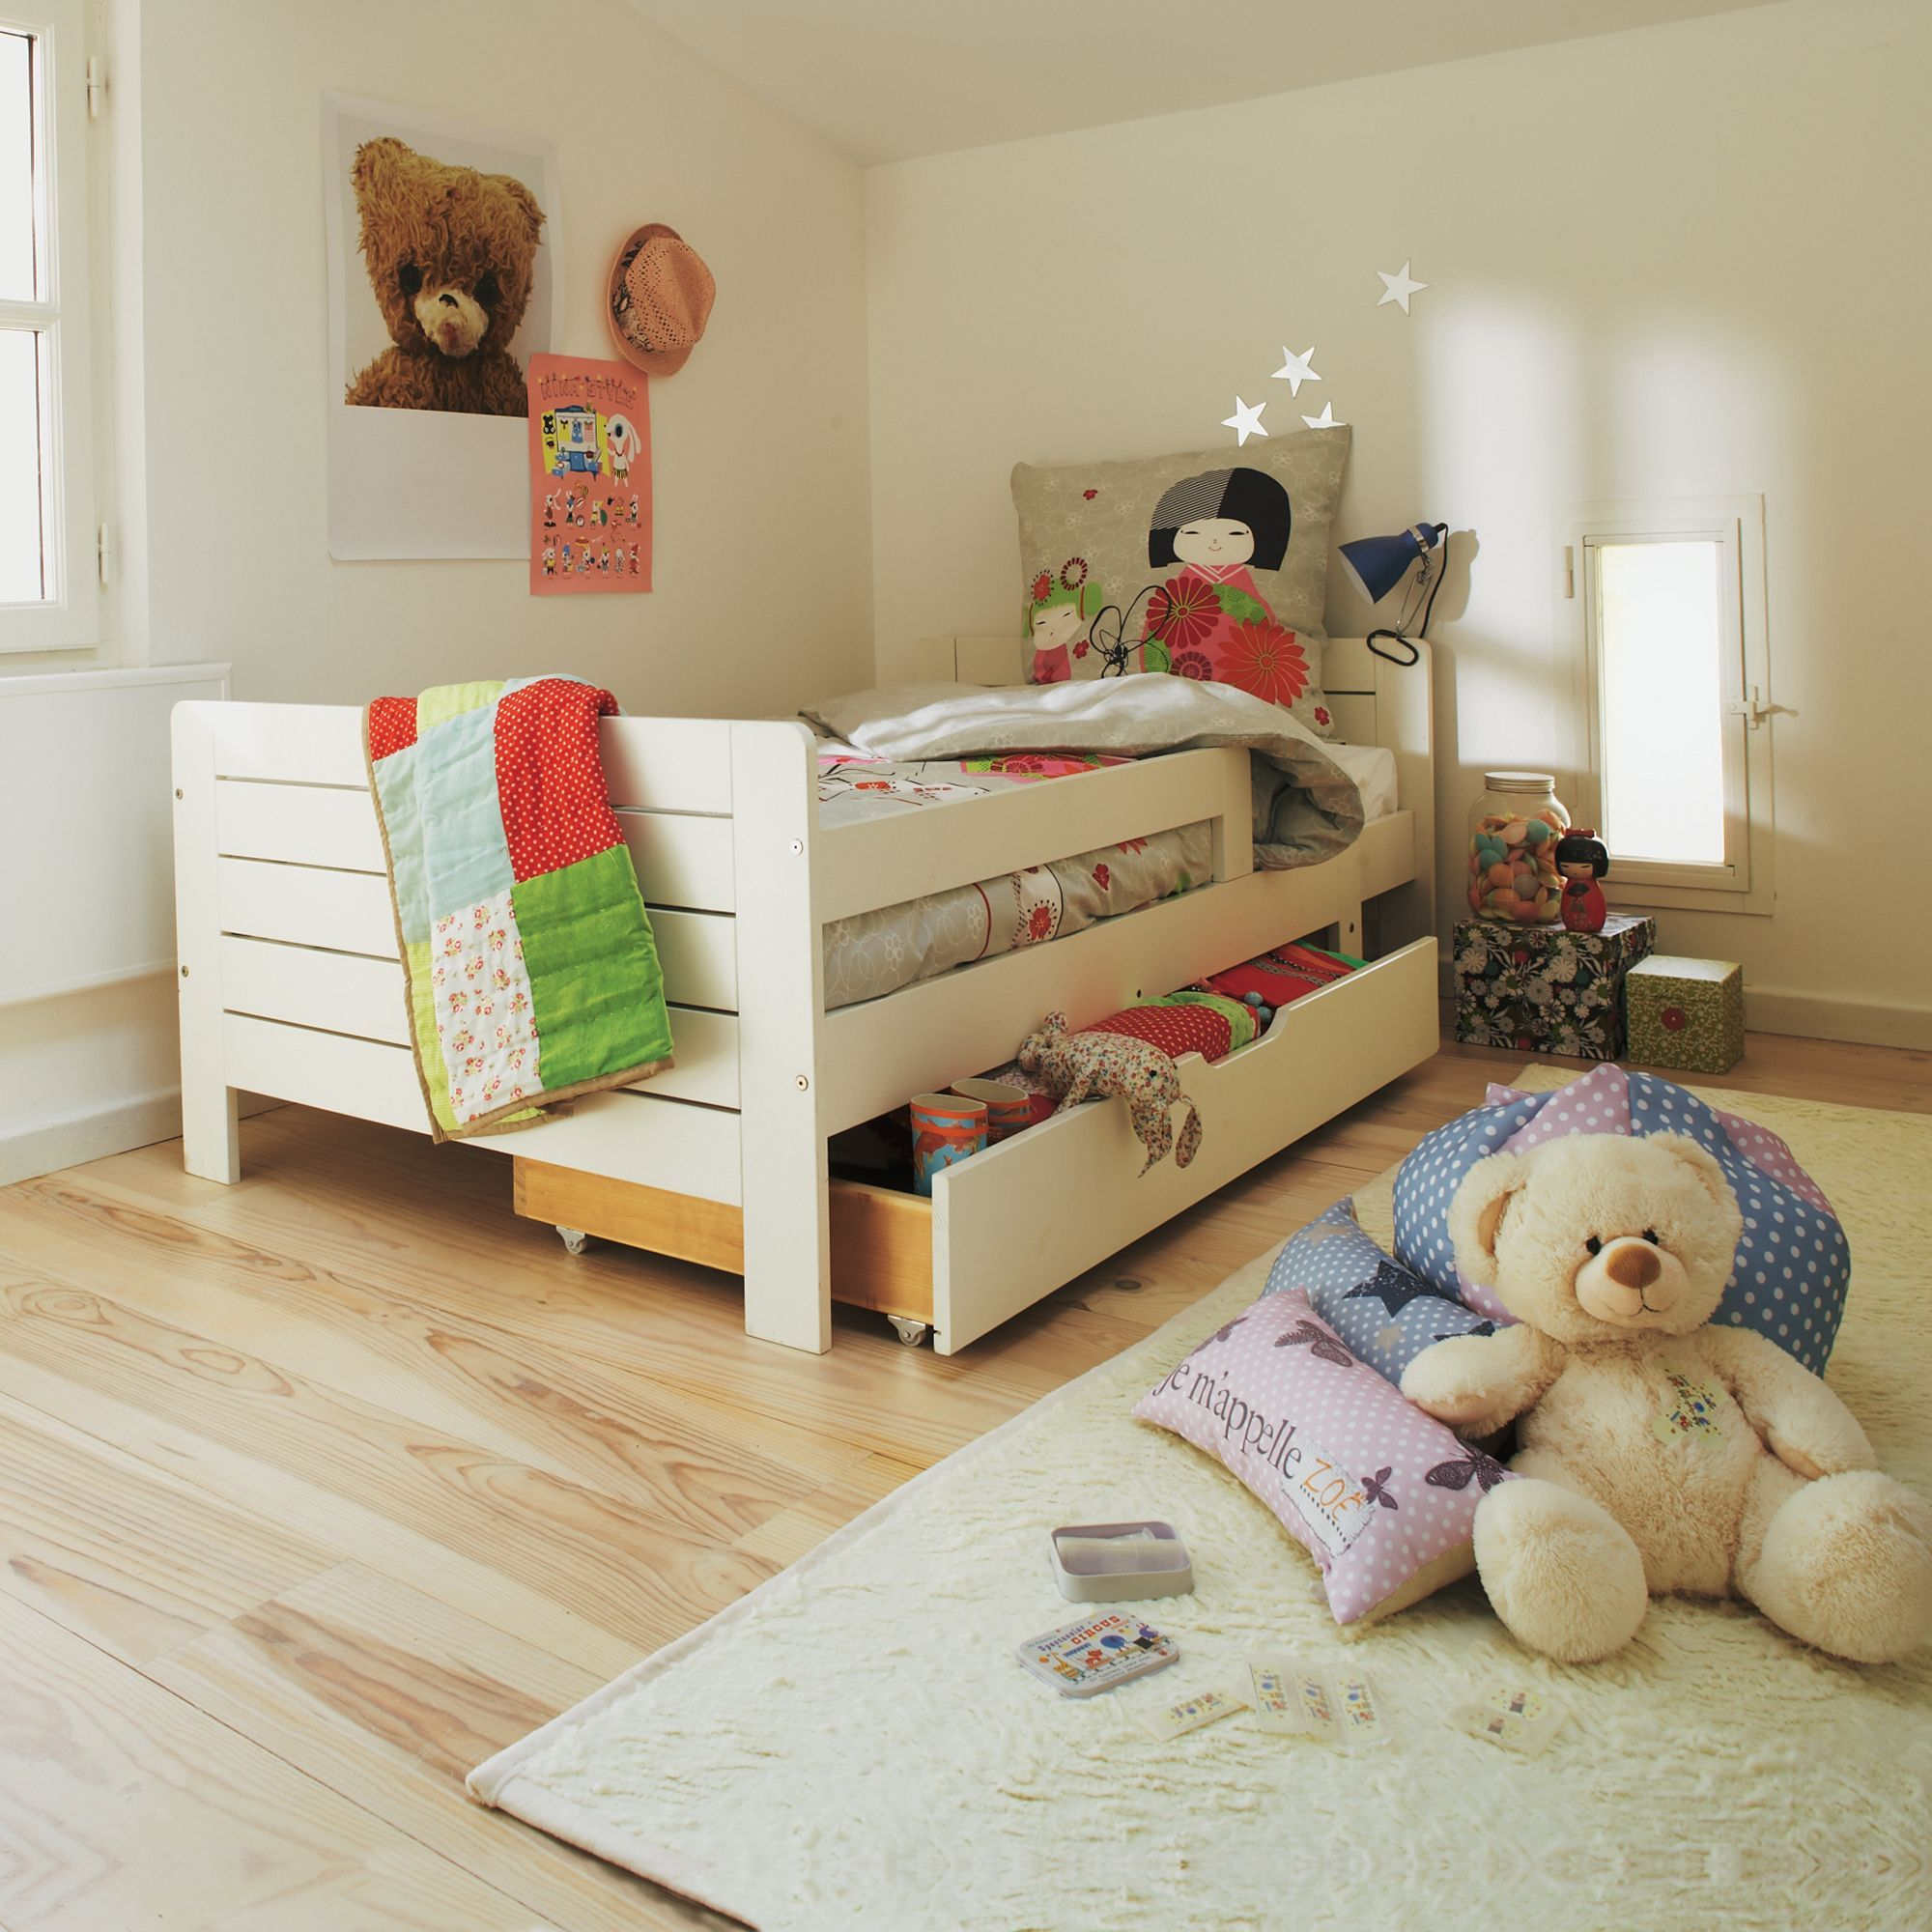 lit volutif avec tiroir de rangement lilou les lits enfants les meubles pour chambre enfant. Black Bedroom Furniture Sets. Home Design Ideas